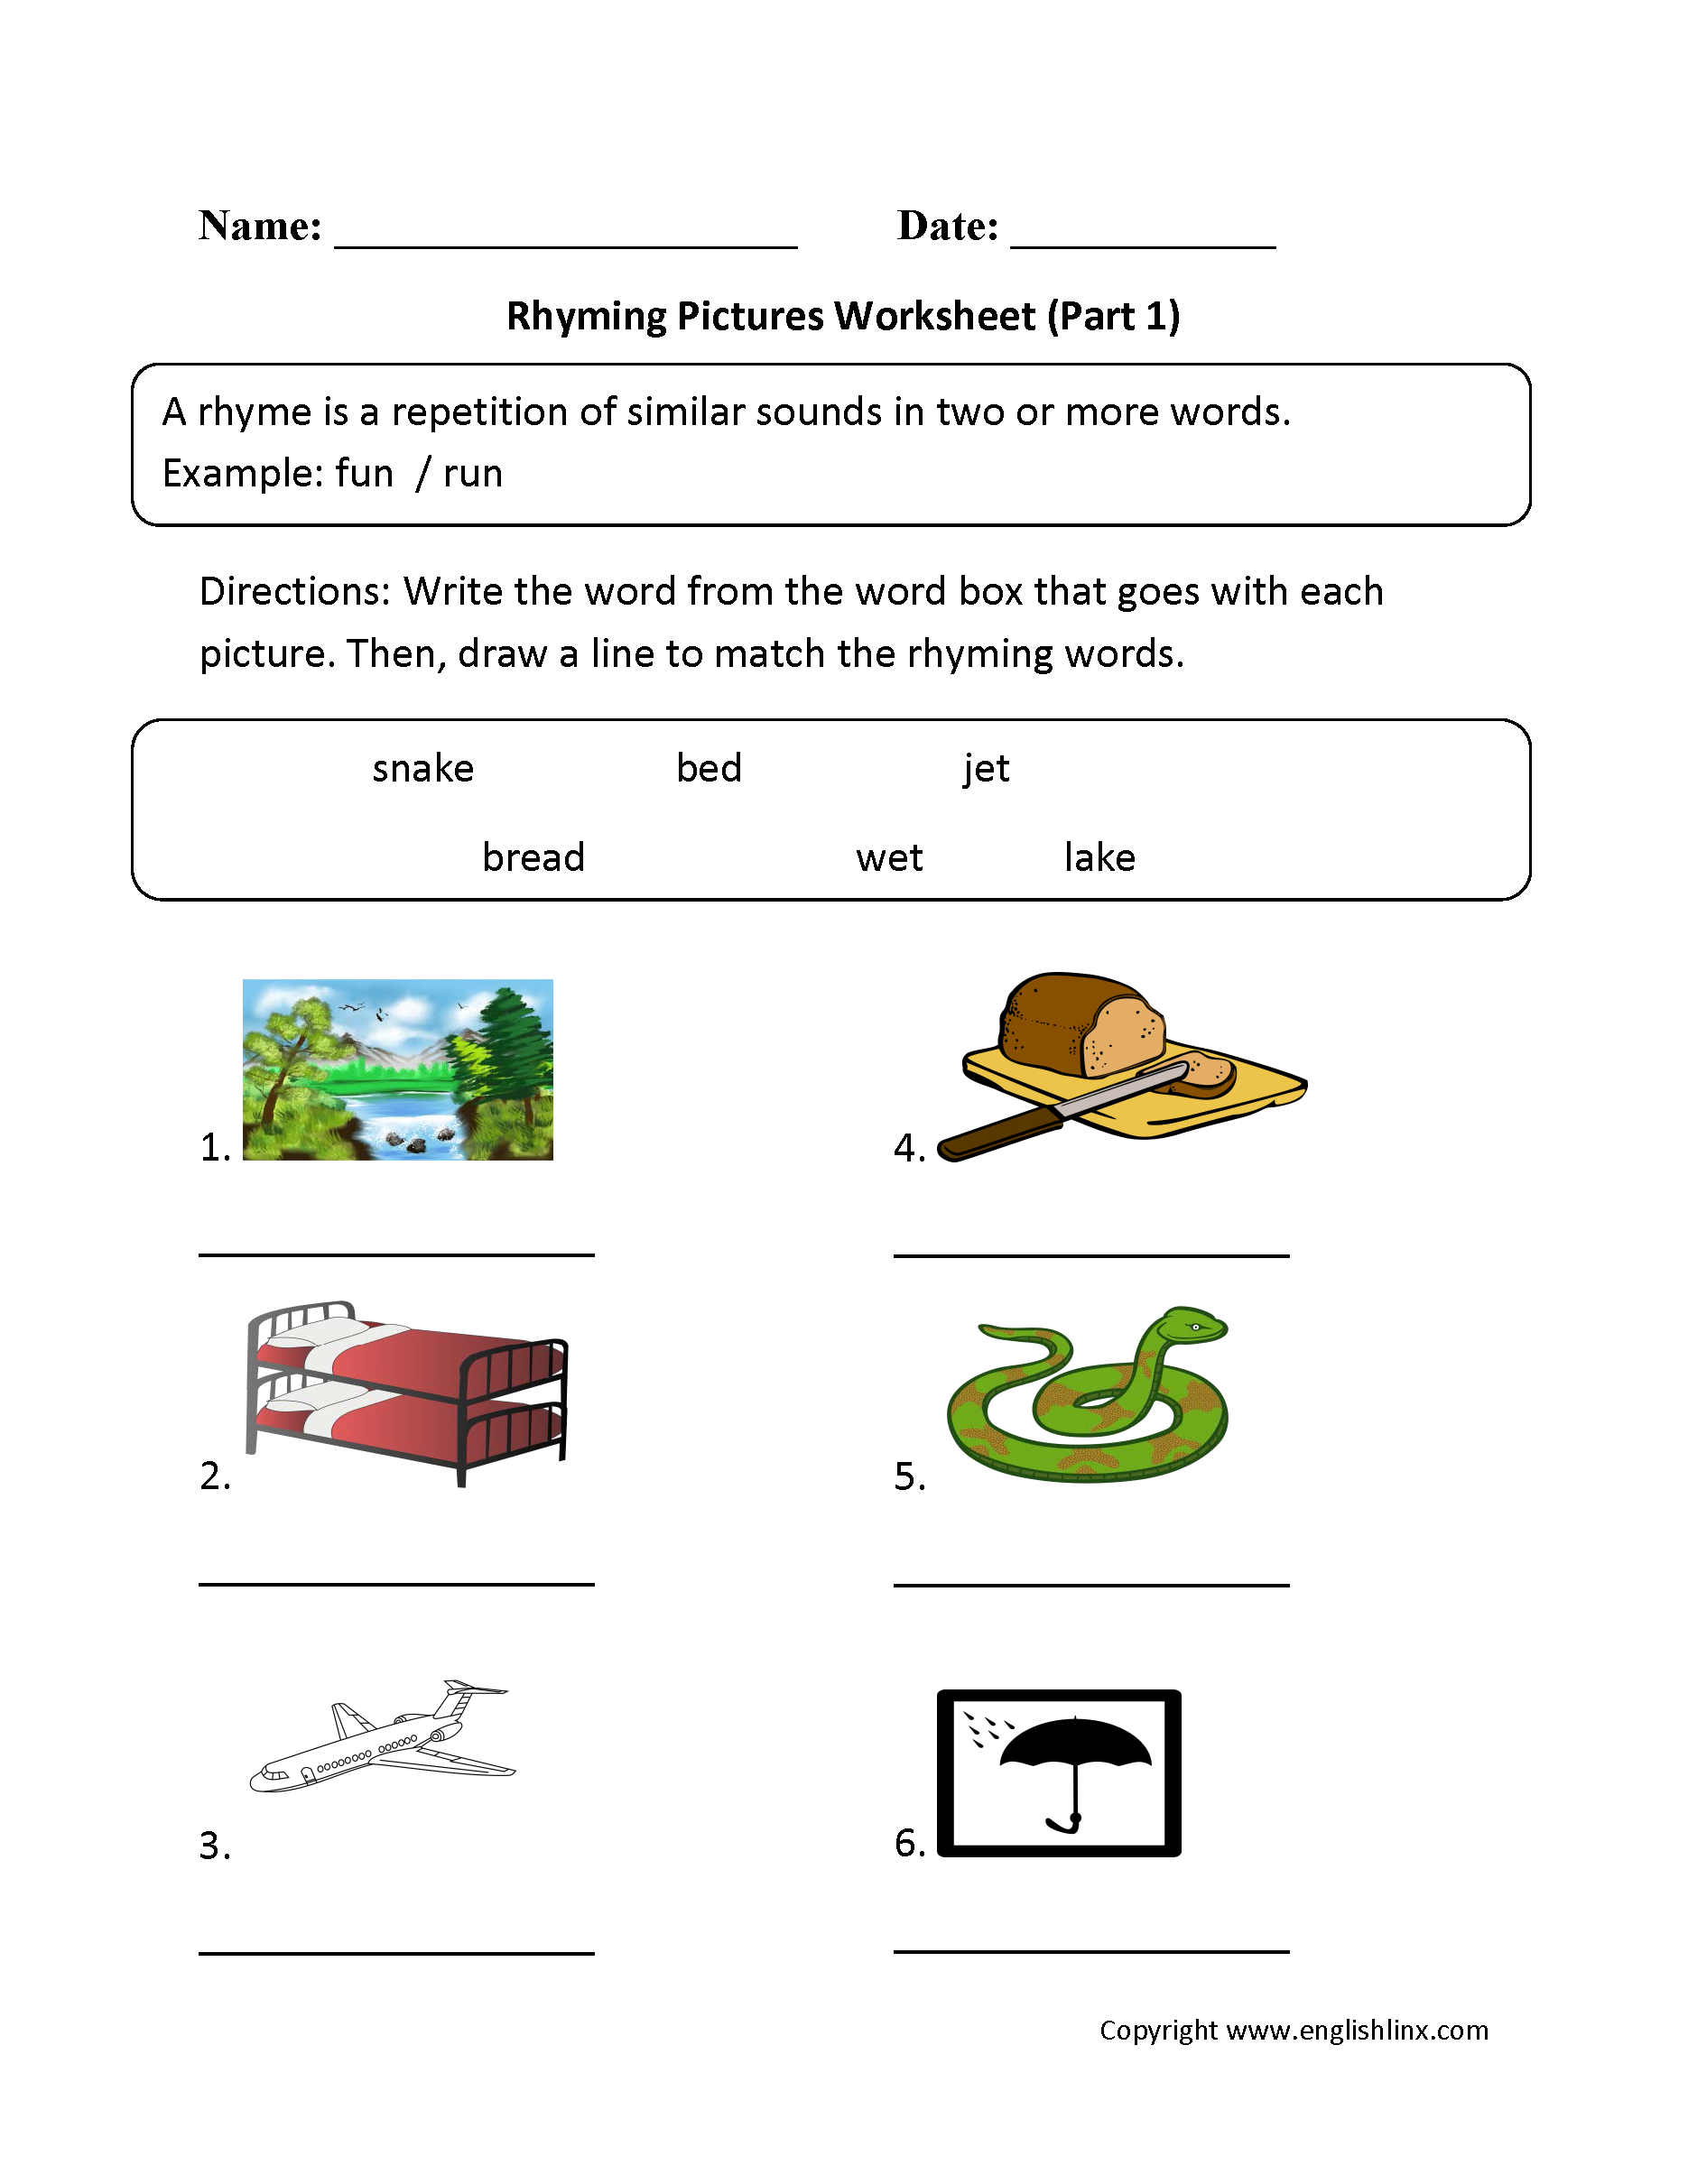 Rhyming Pictures Worksheets Part 1 With Images